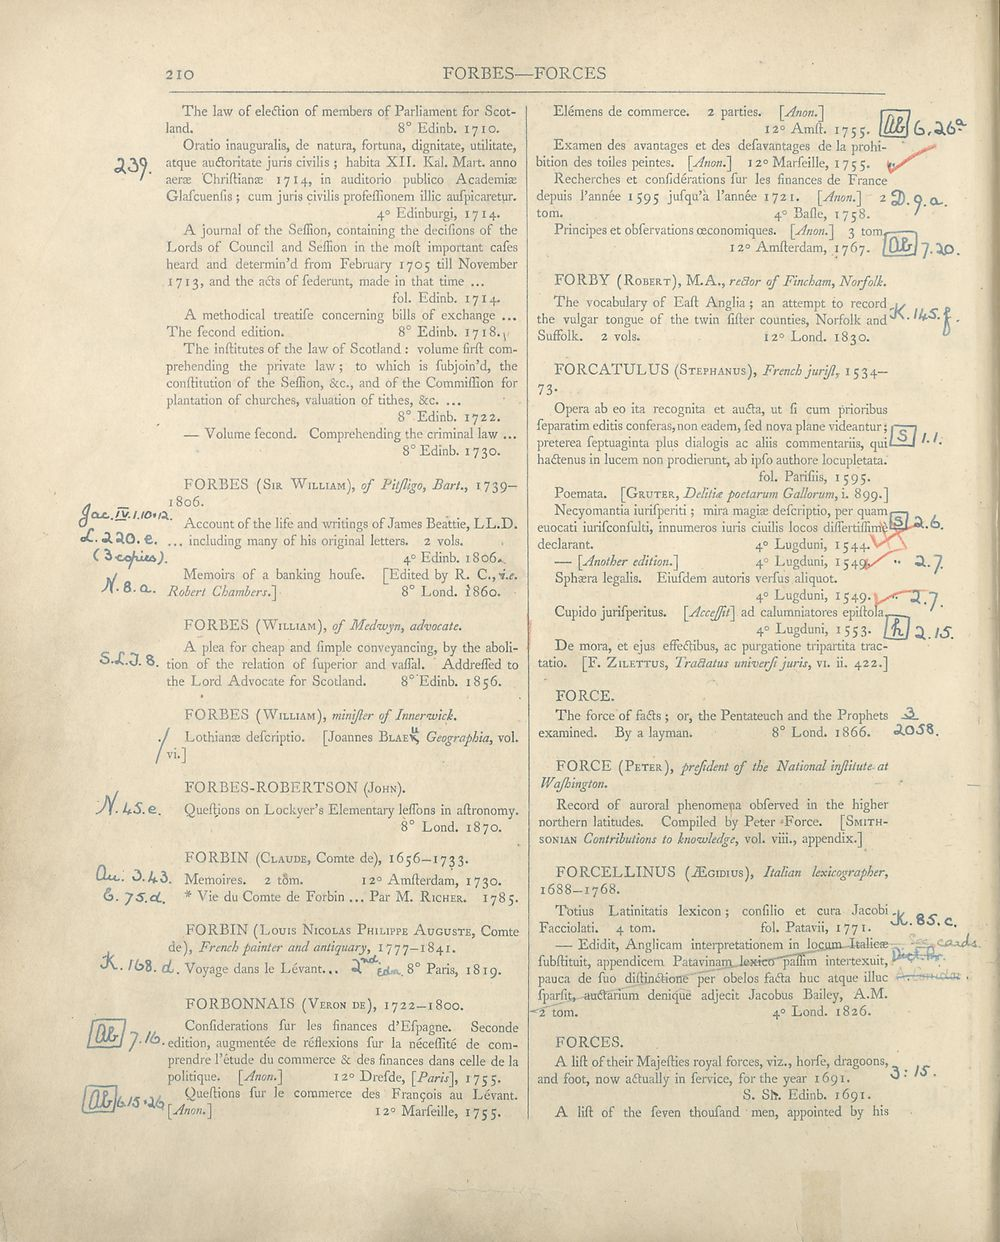 294) Page 210 - FORBES -- FORCES - Catalogue of the printed books in